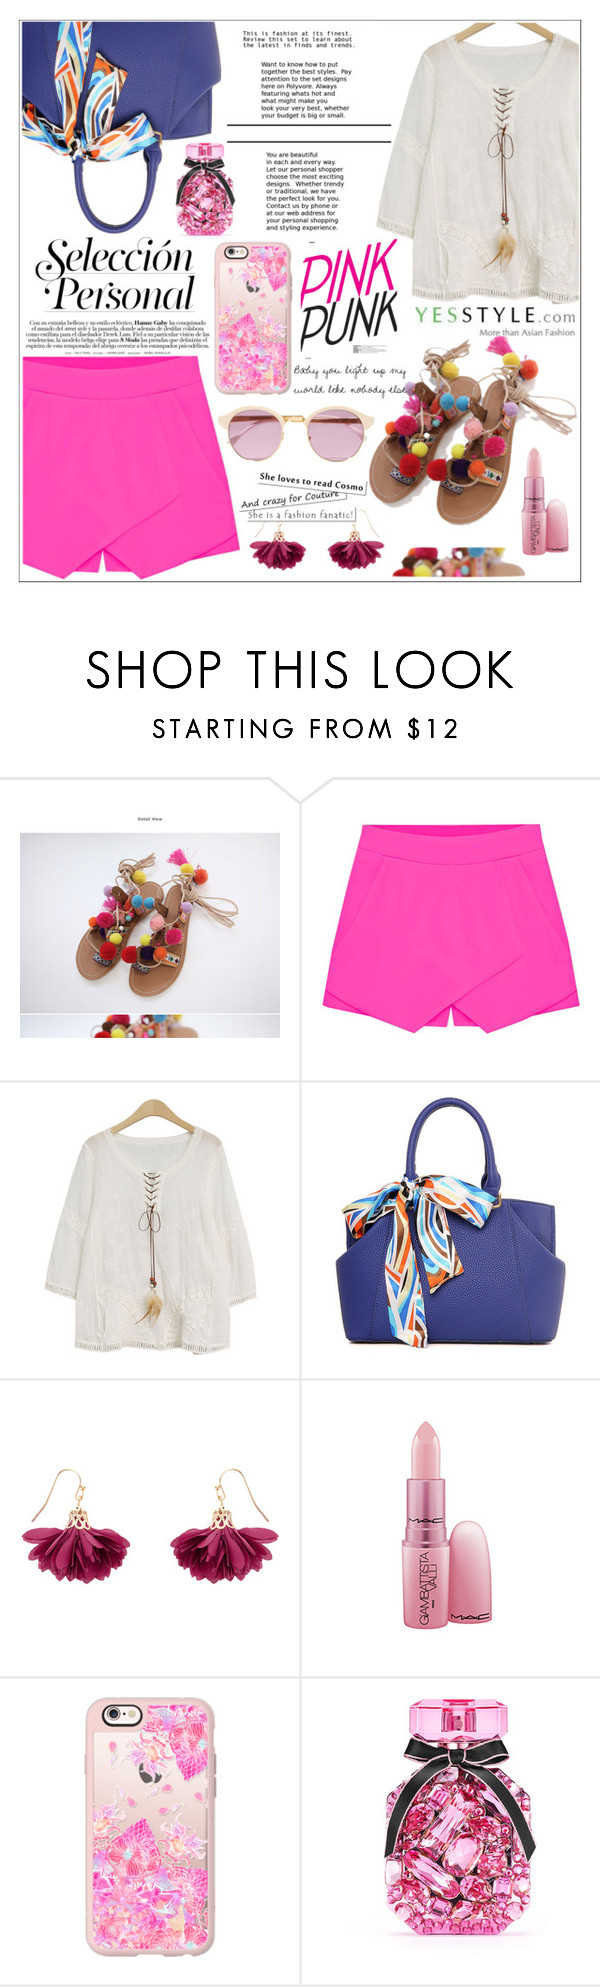 """""""YesStyle Contest ♥"""" by av-anul ❤ liked on Polyvore featuring Eloqueen, Goroke, Accessorize, MAC Cosmetics, Casetify, Victoria's Secret, Sheriff&Cherry, Summer, sandals and yesstyle"""